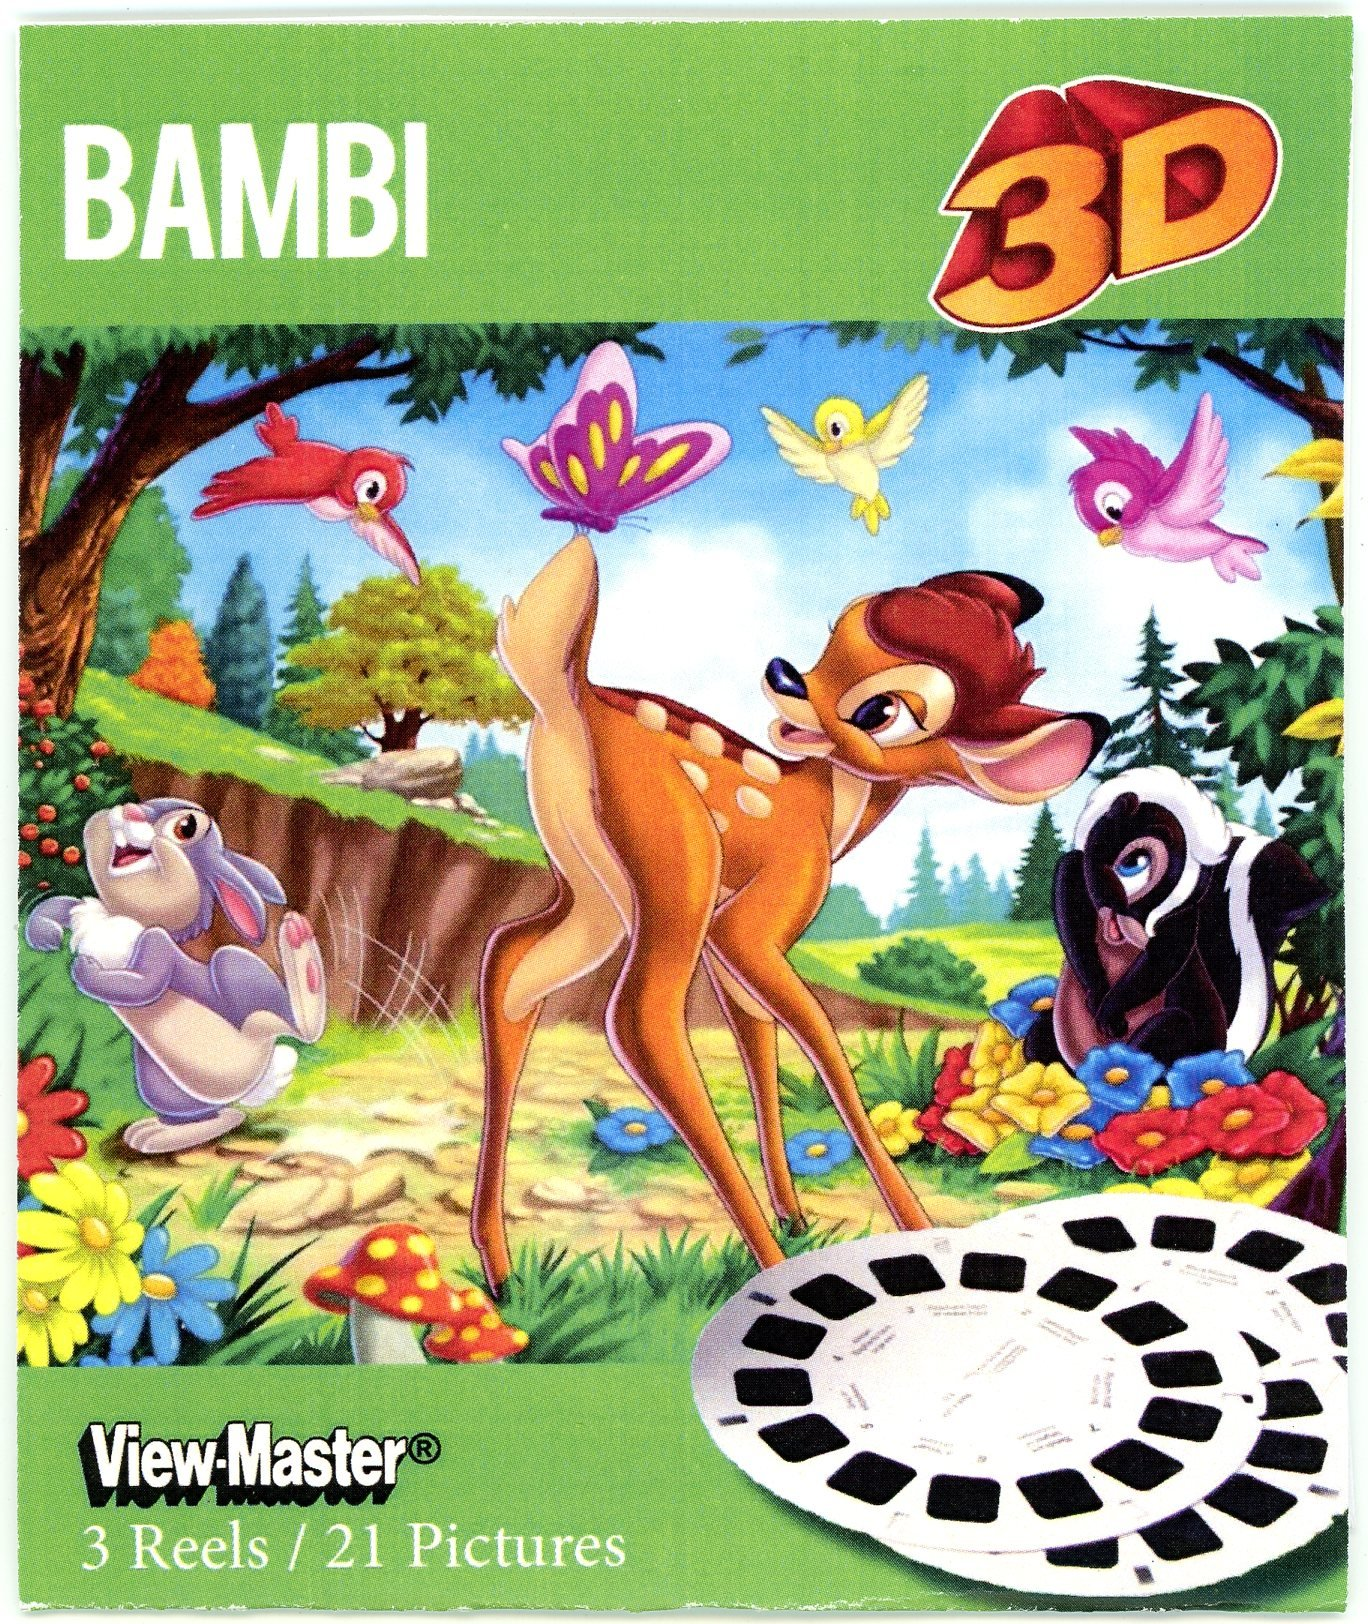 ViewMaster- Disney's Bambi - 3 Reels on Card - NEW by 3Dstereo ViewMaster by 3Dstereo ViewMaster